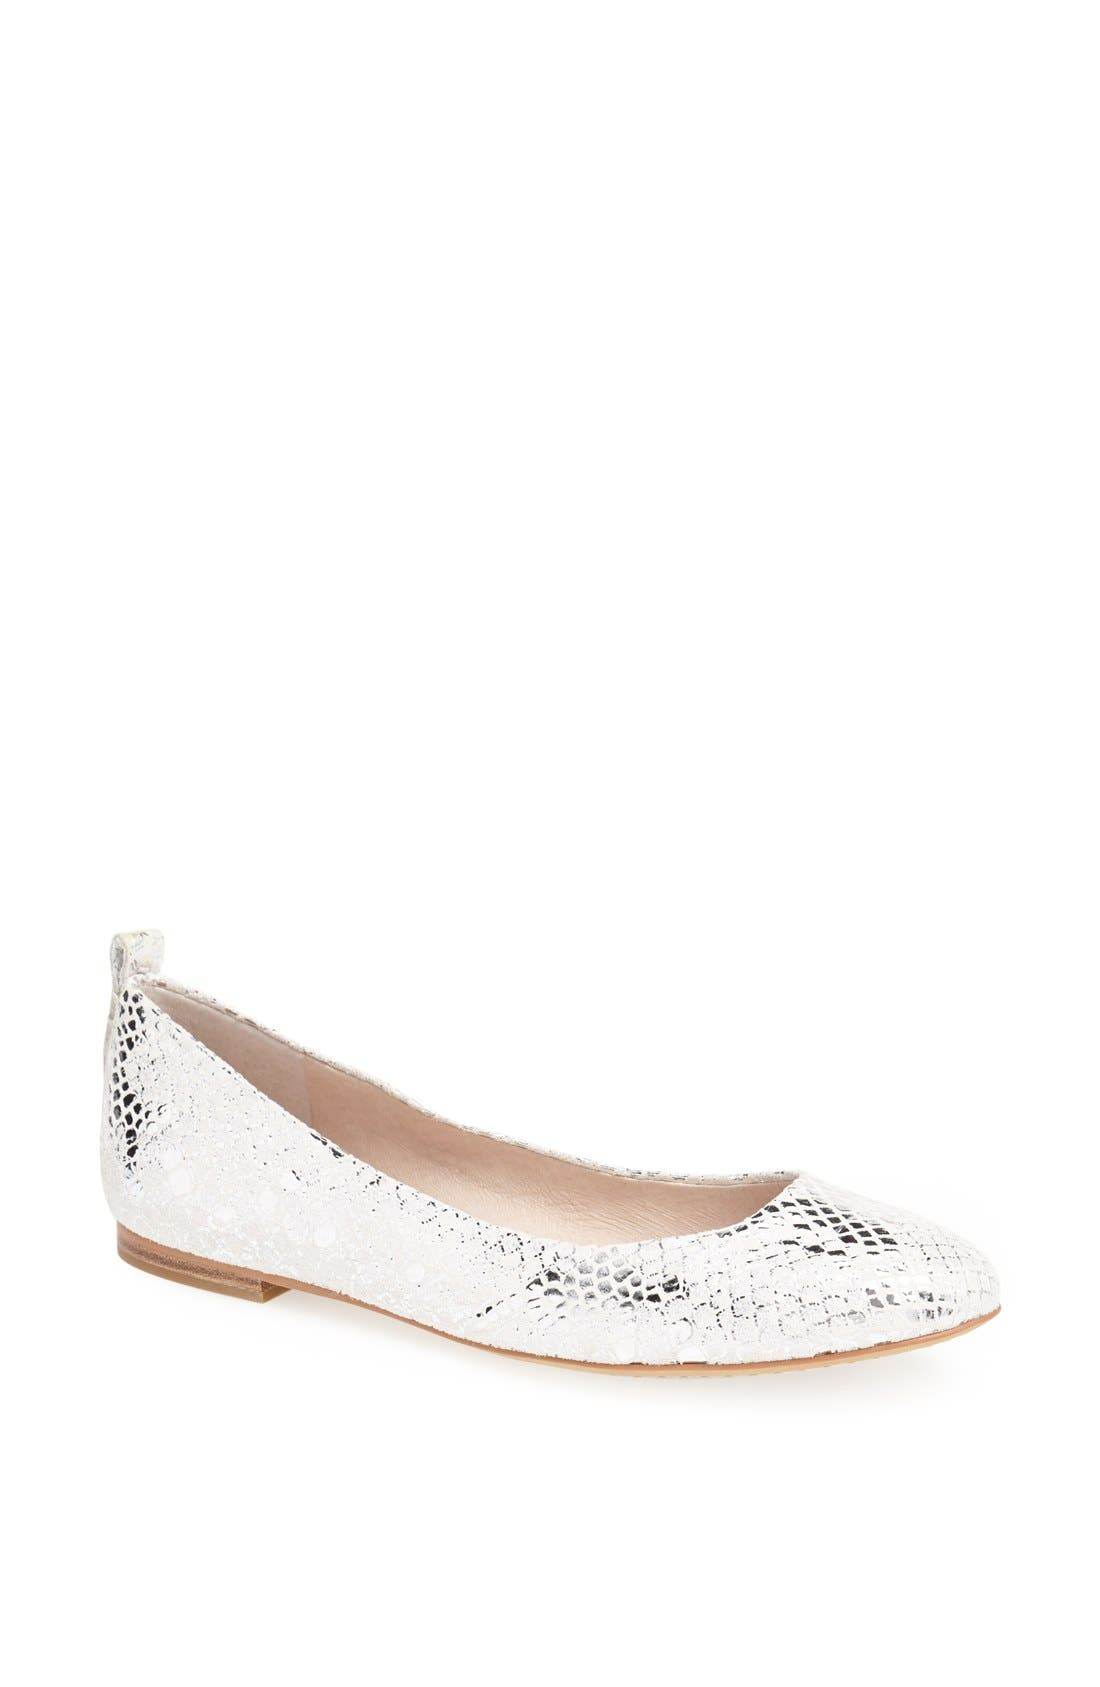 Alternate Image 1 Selected - Vince Camuto 'Benningly' Snake Embossed Metallic Leather Ballet Flat